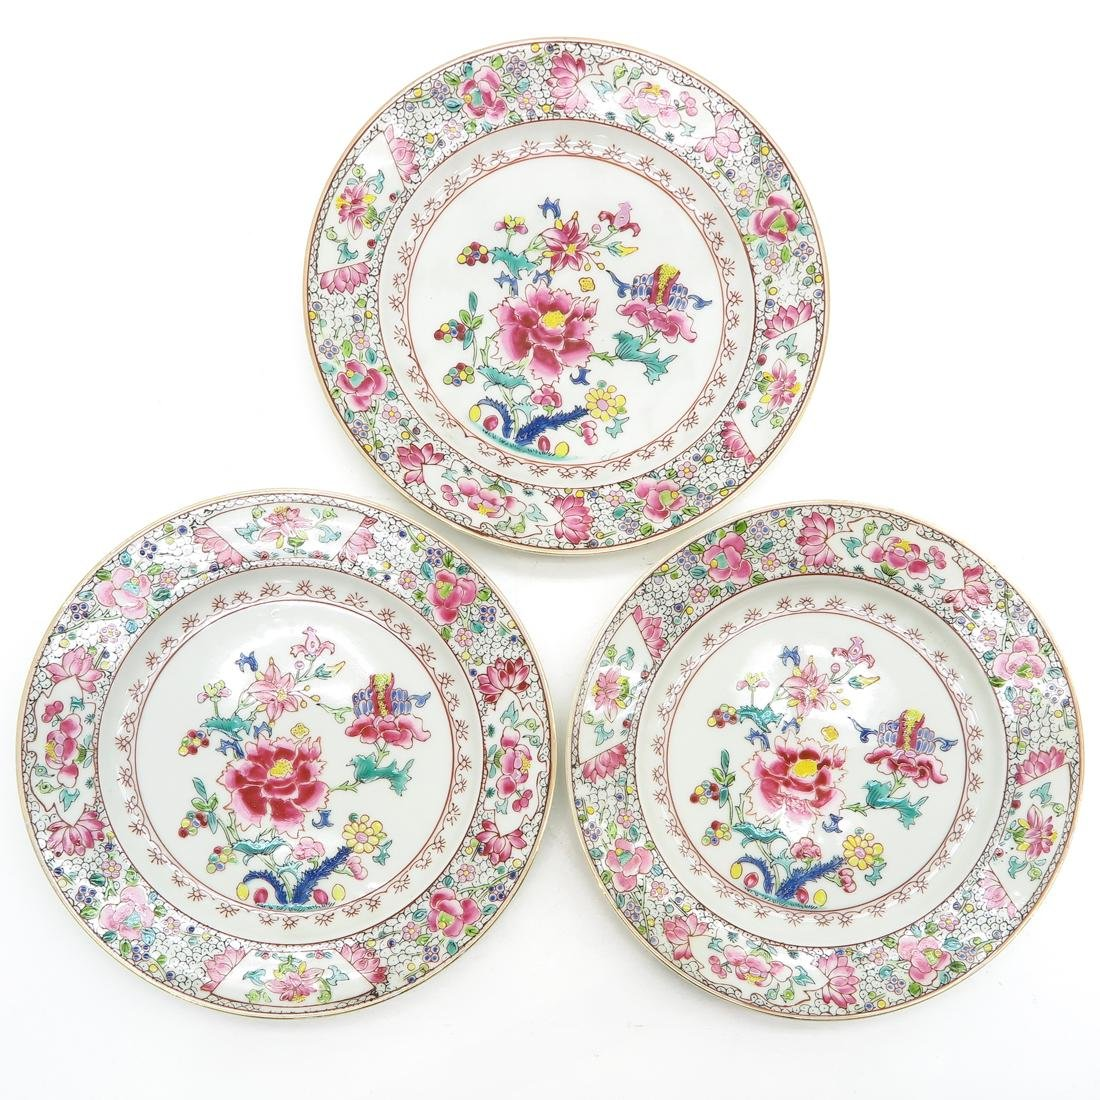 Lot of 3 Plates